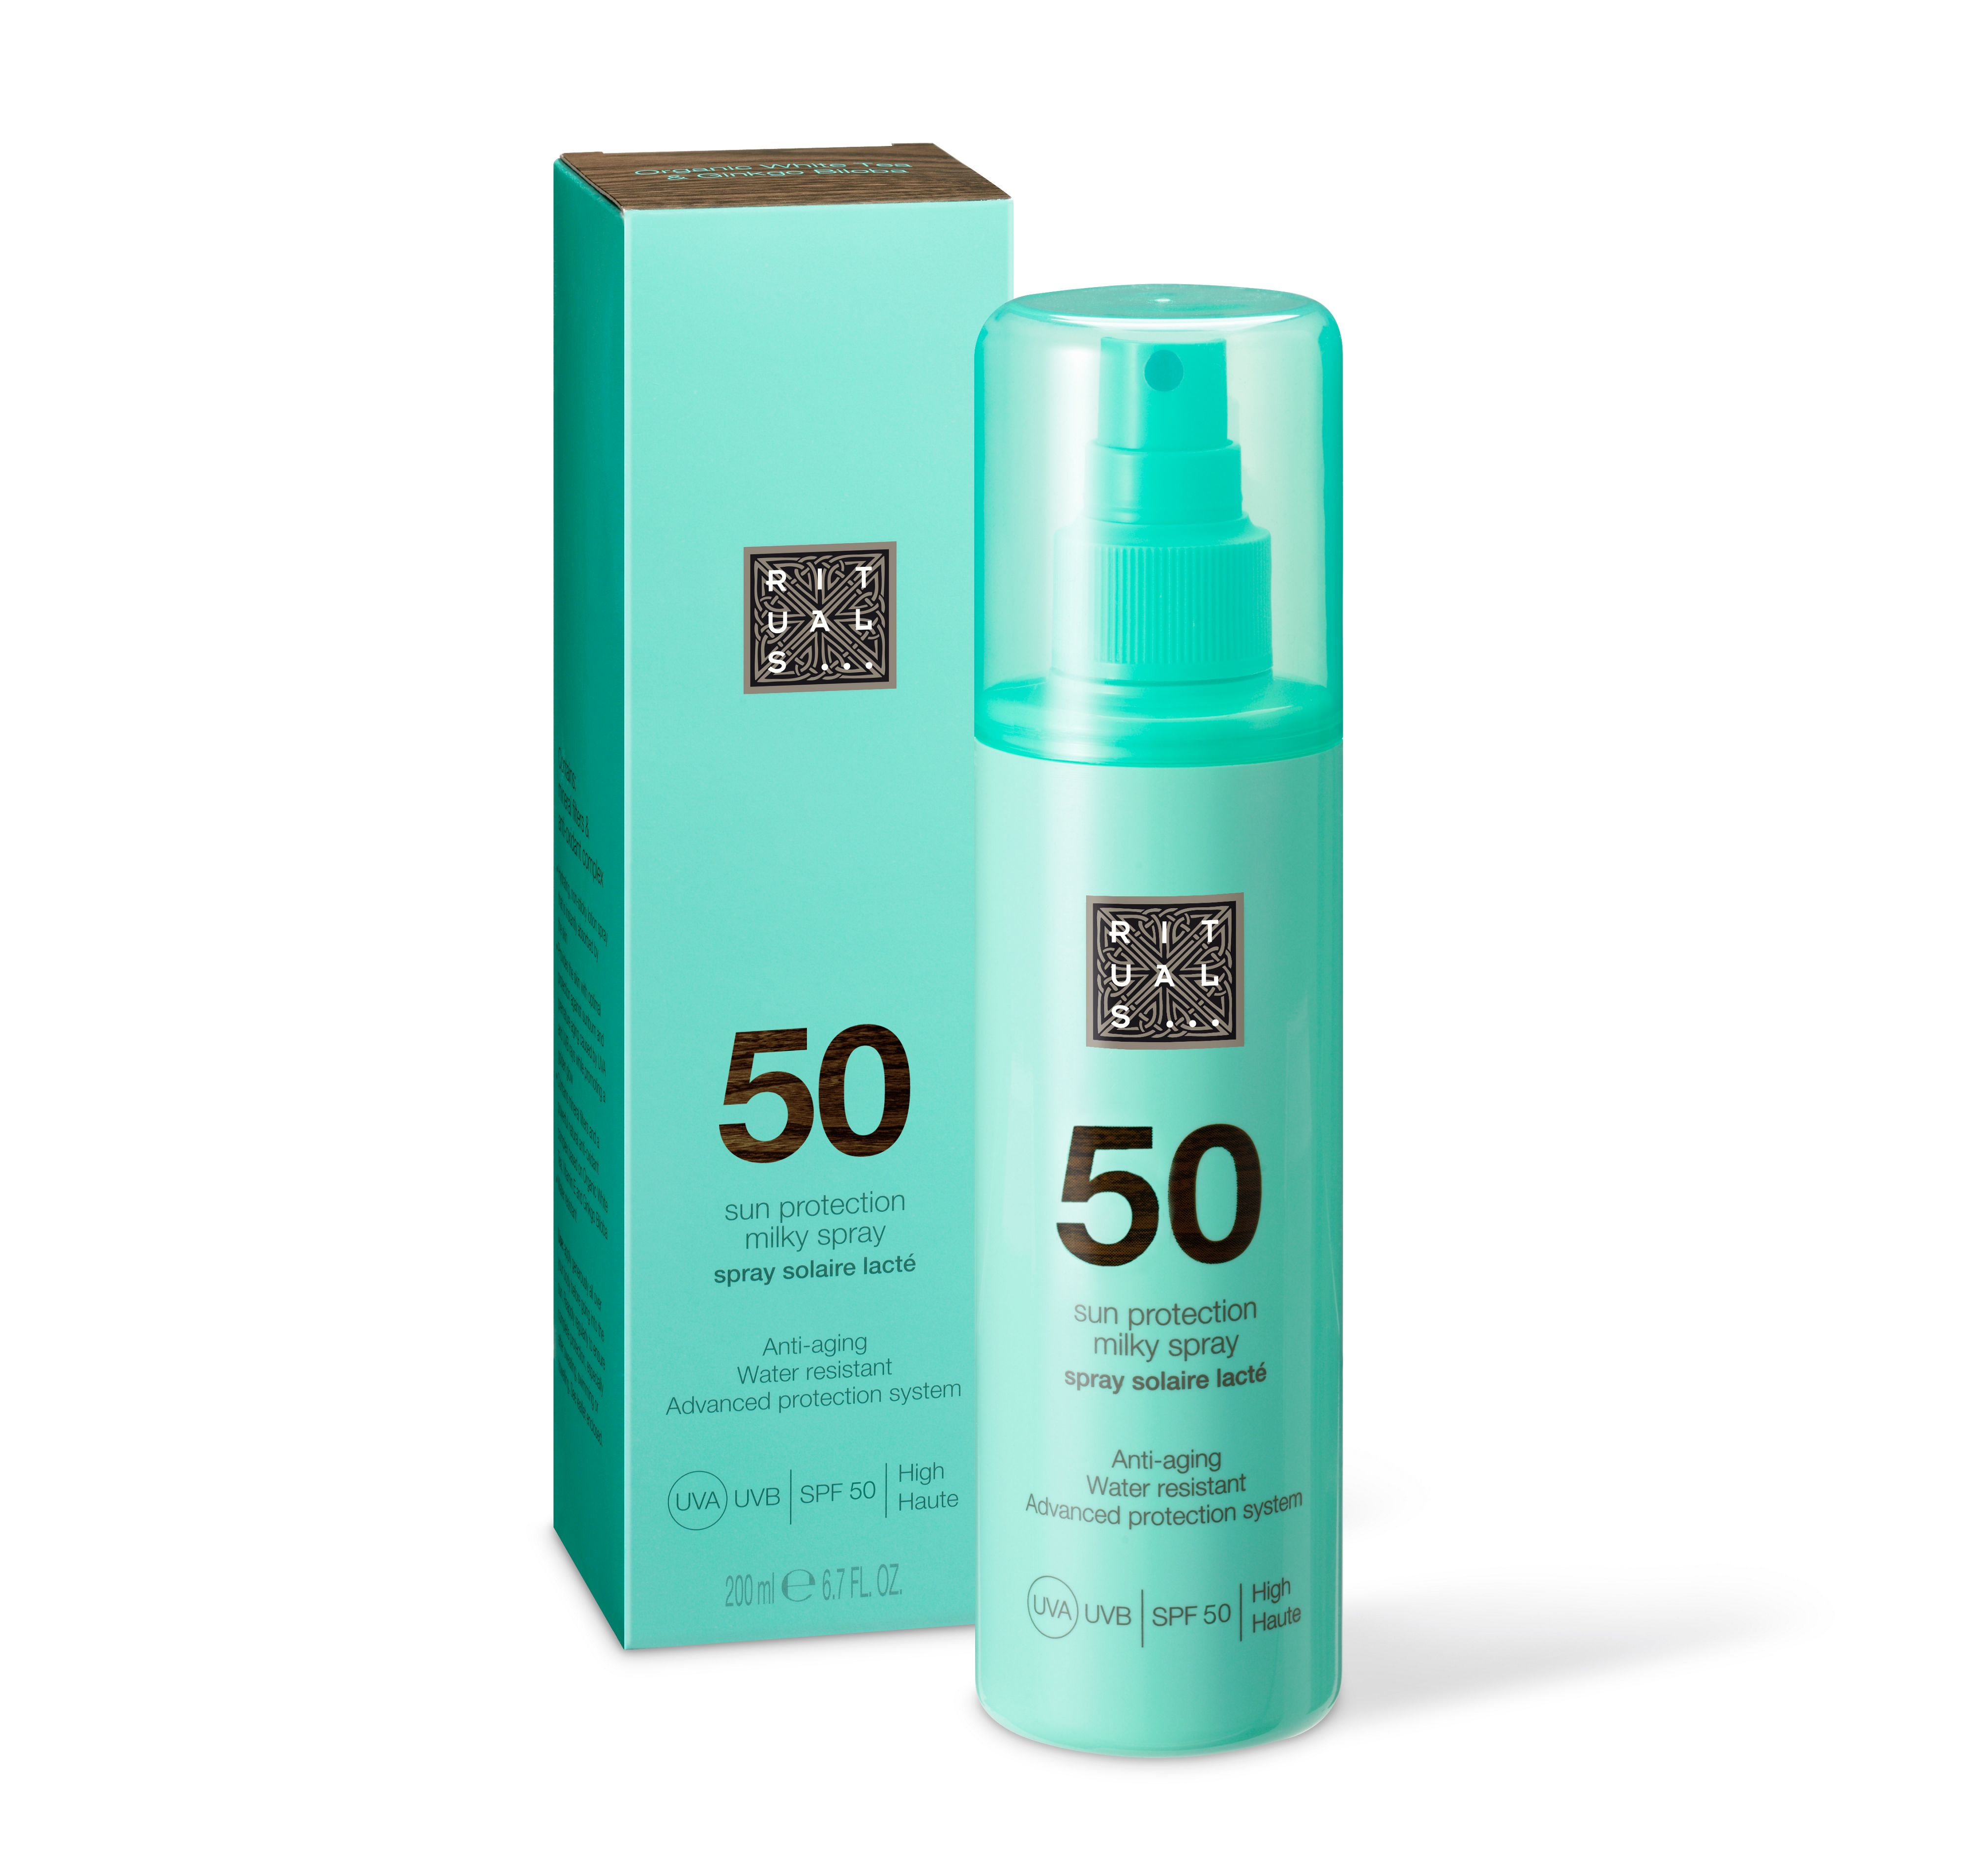 50 sun protection milky spray